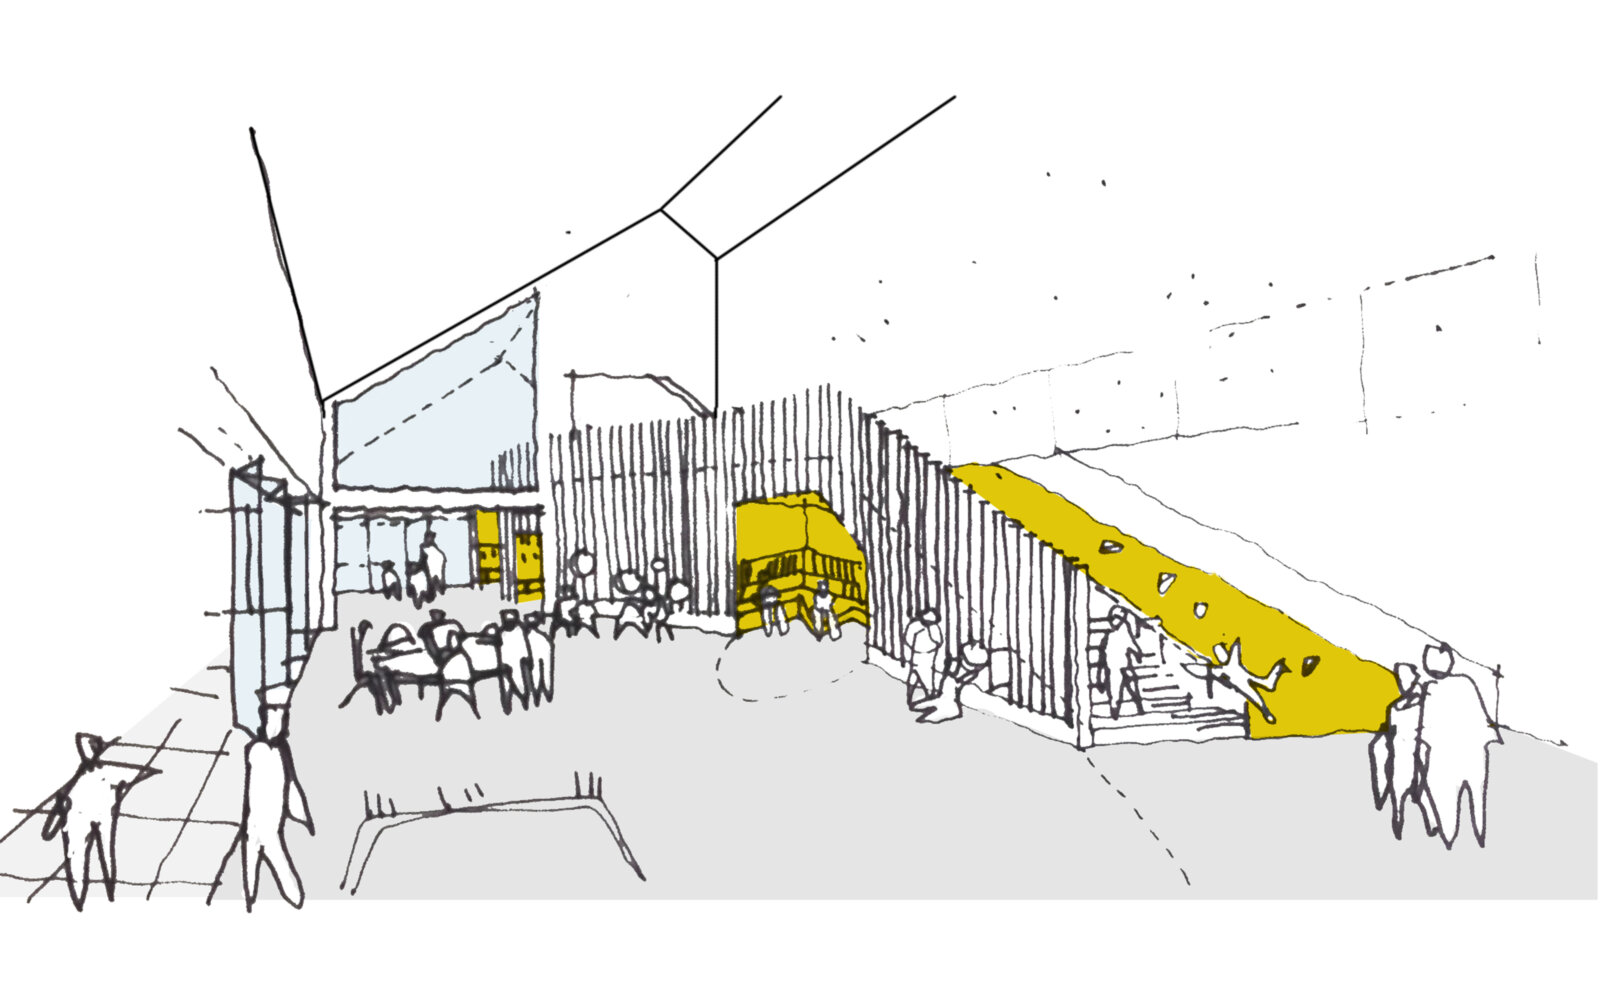 Hallglen Early Years Centre internal view sketch